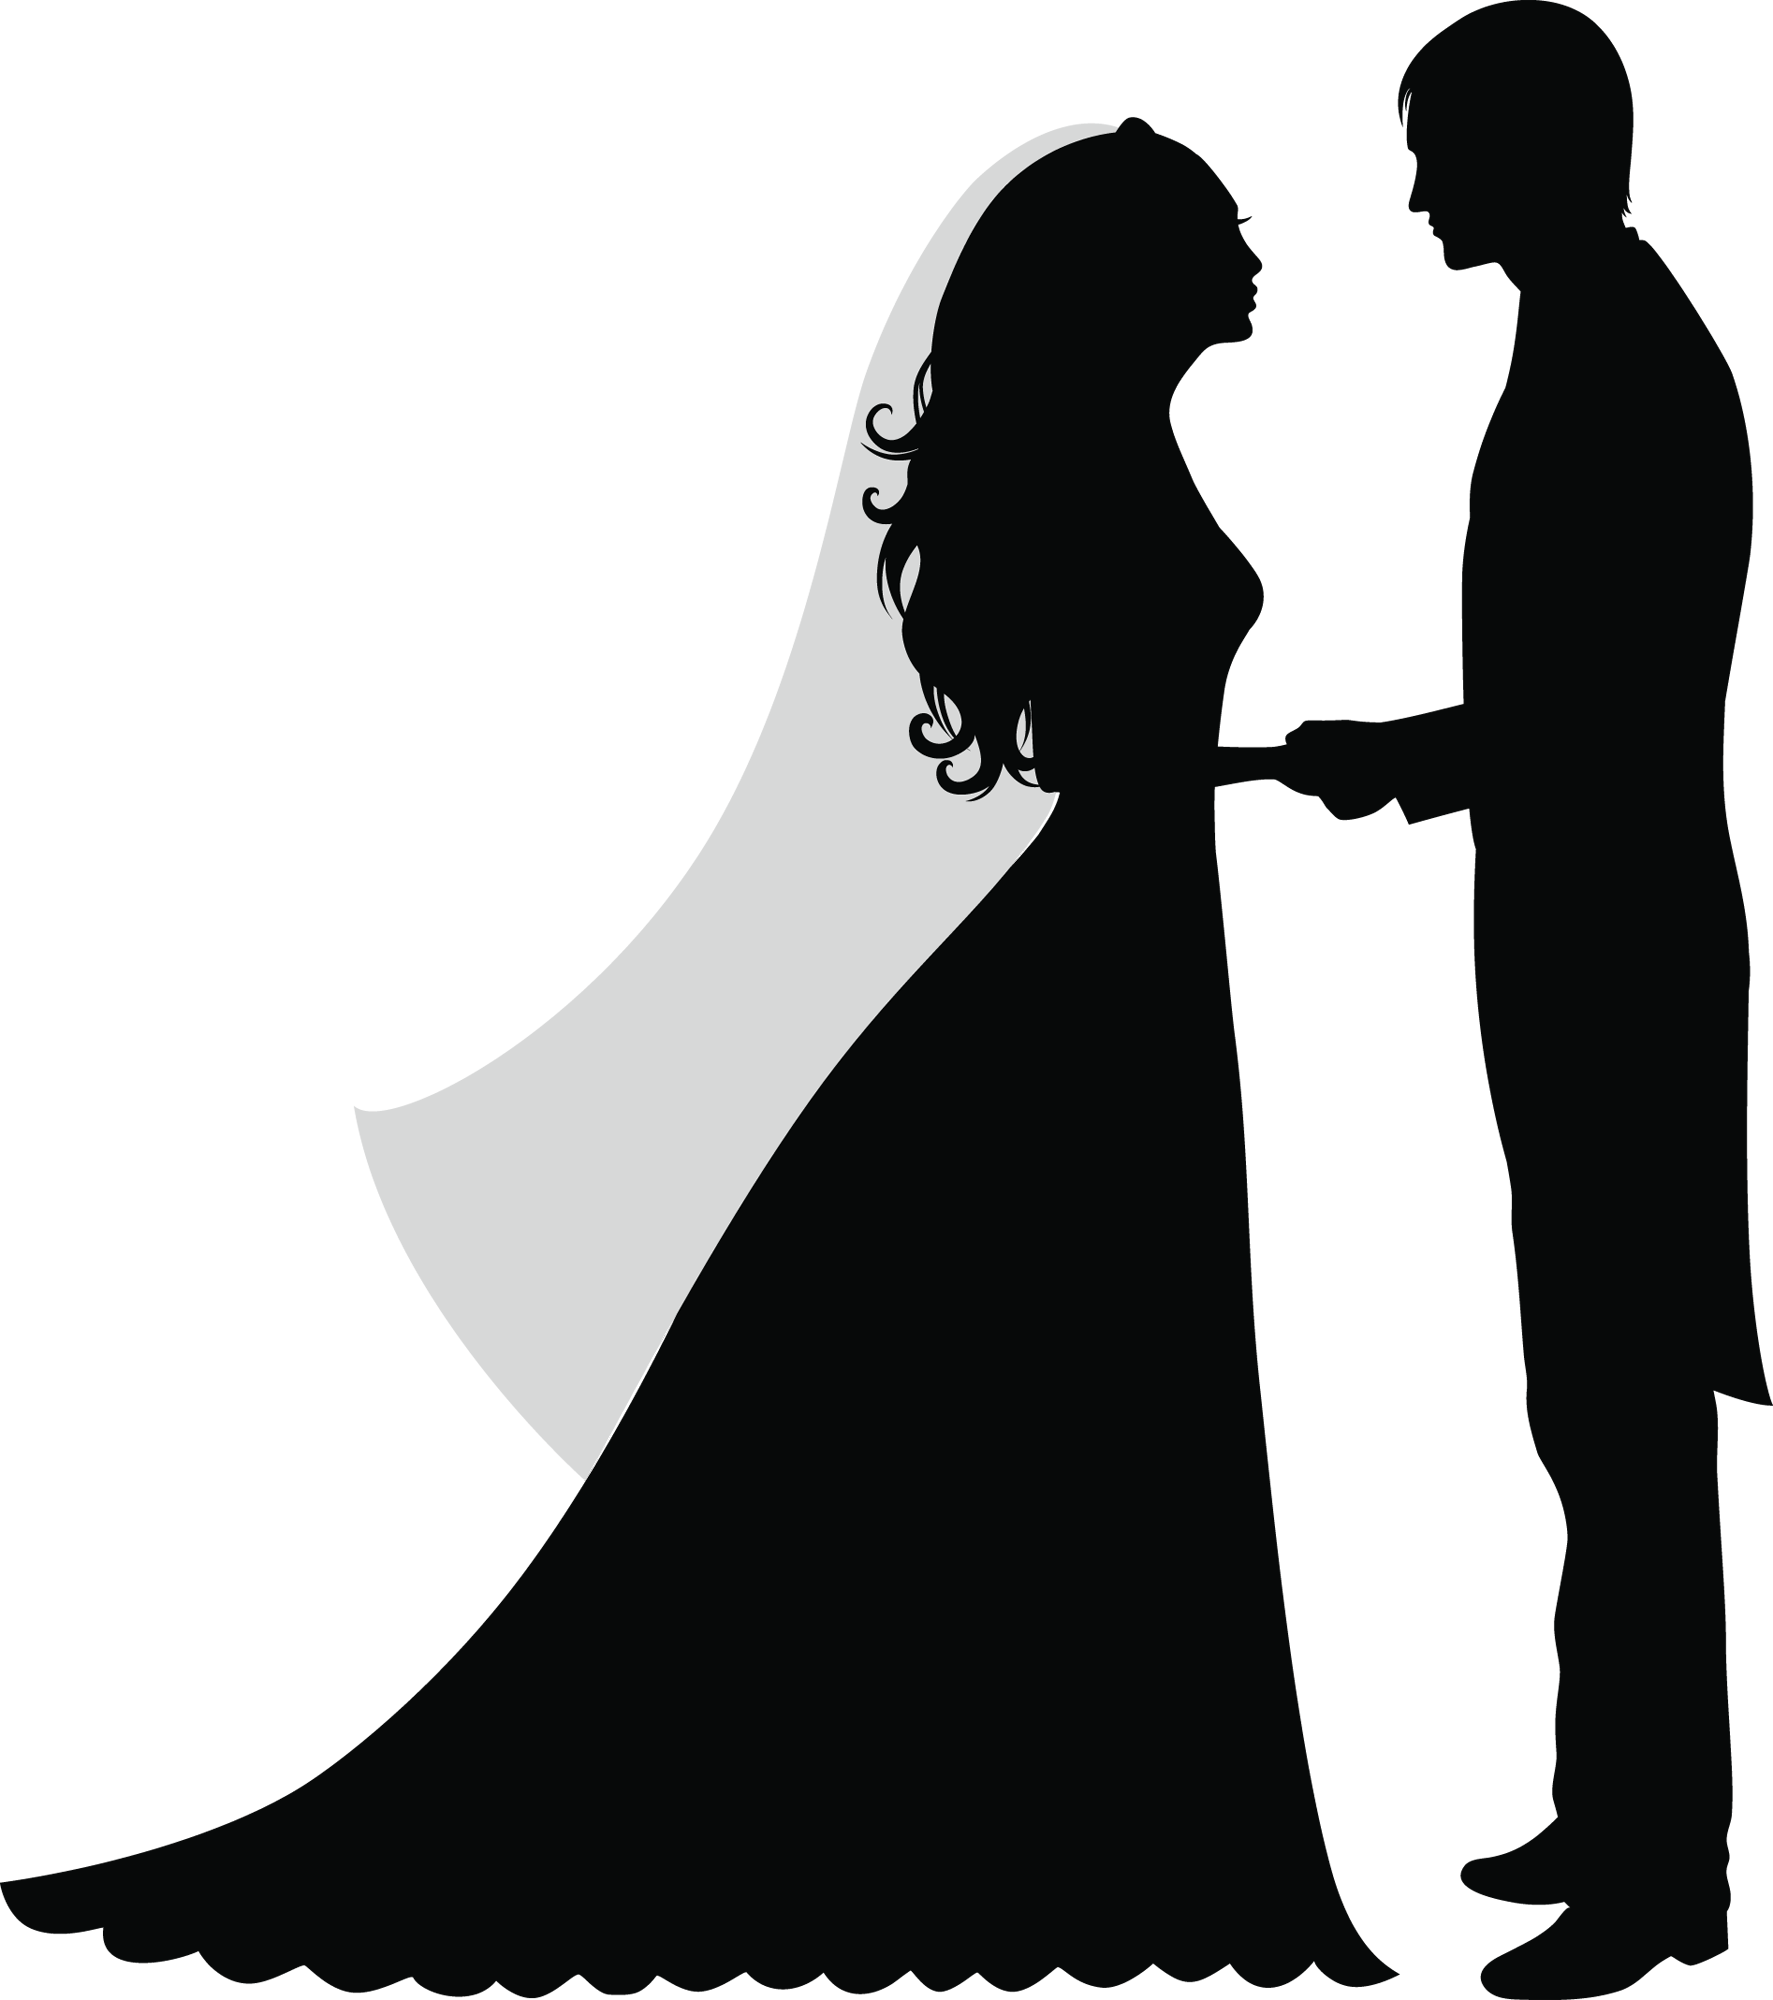 Bride and groom coloring book clipart graphic library stock CASAMENTO | silhouette | Pinterest | Stenciling, Silhouette and Cricut graphic library stock